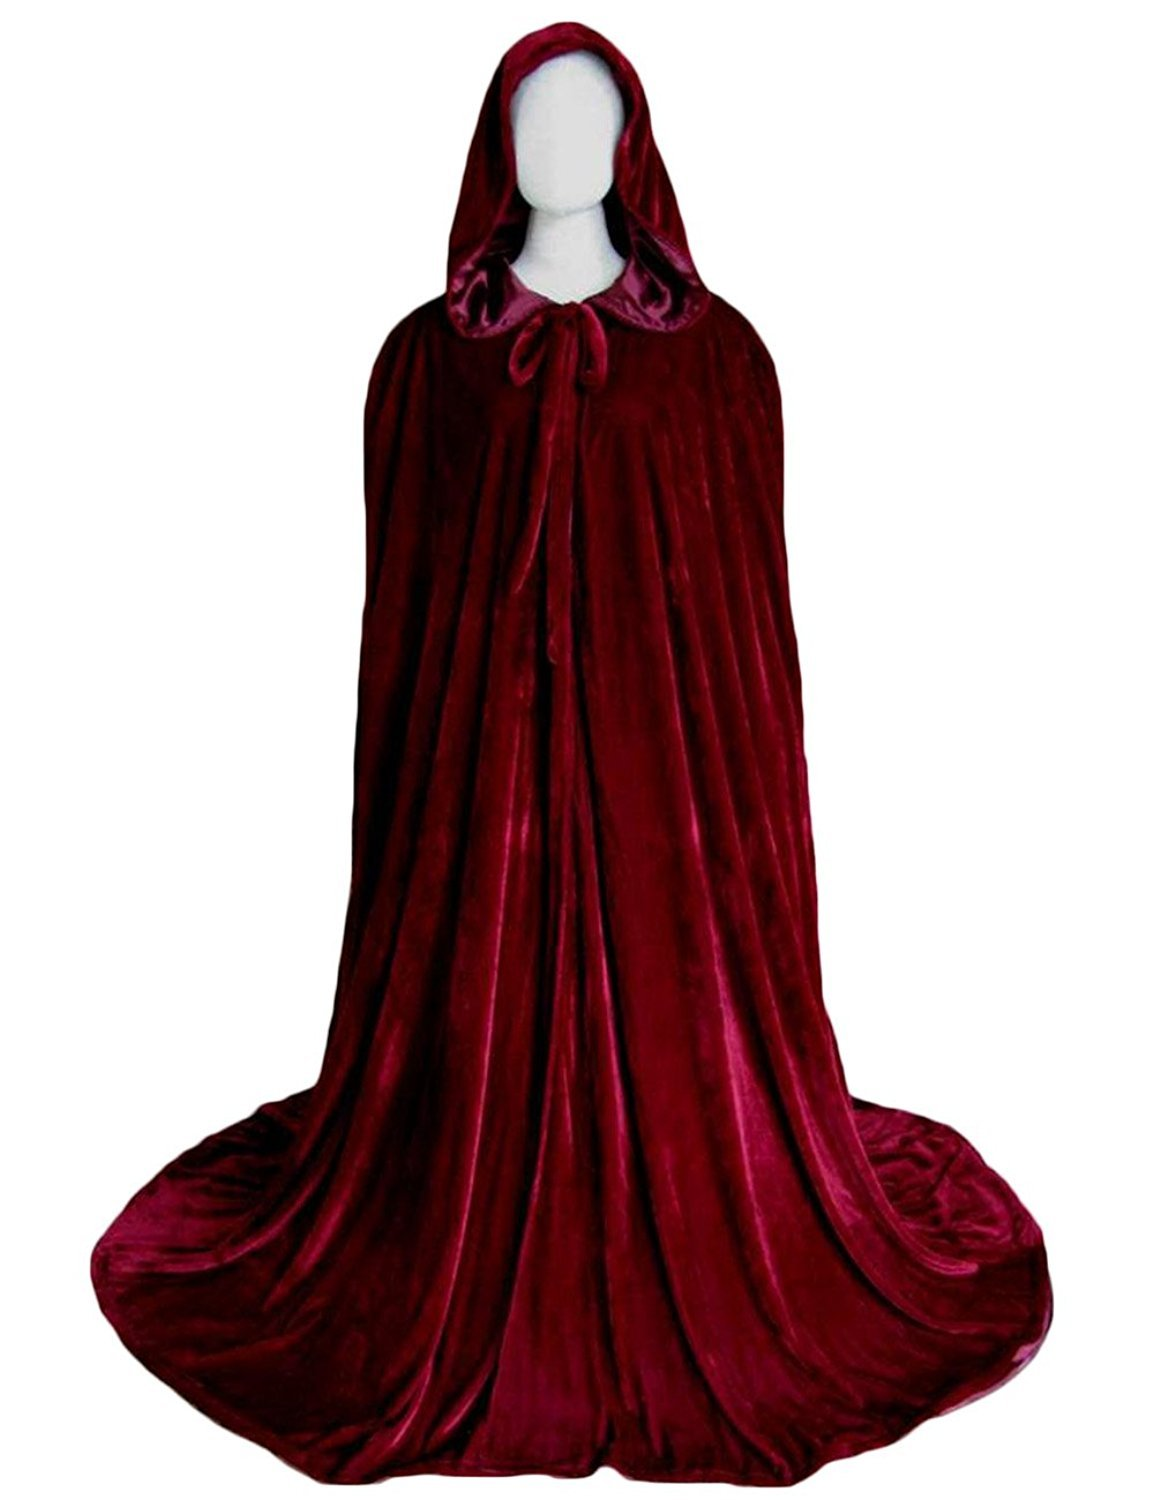 Portsvy Women's Burgundy Hallowen Cloaks Adult Cosplay Costumes Capes Long